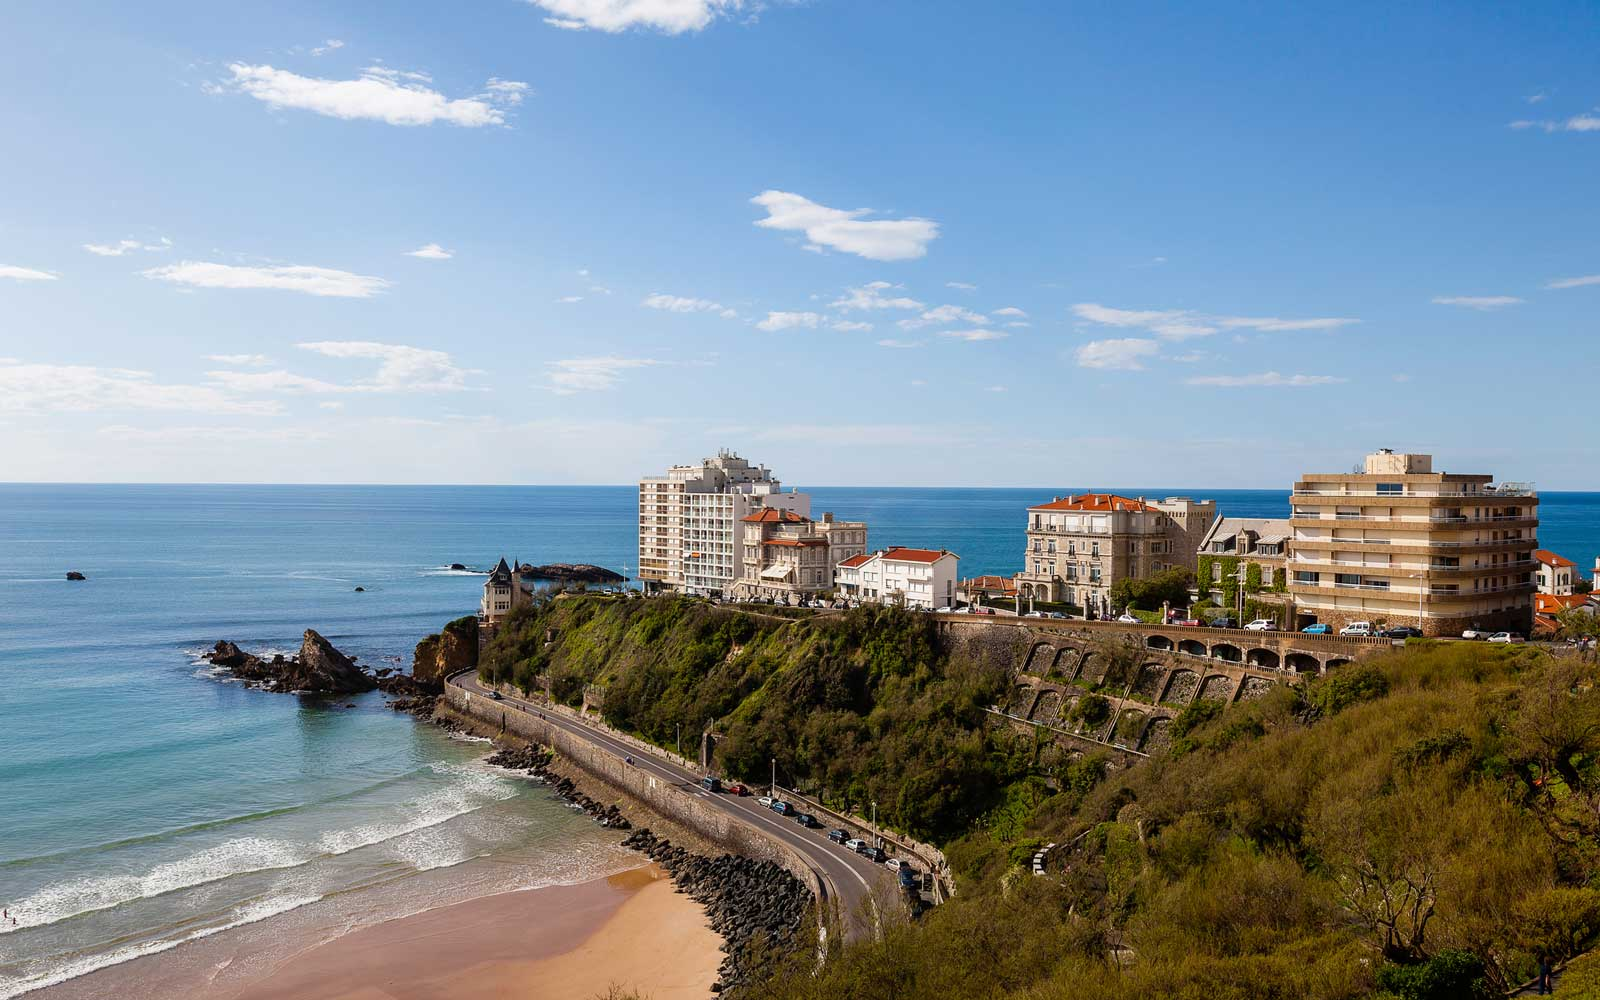 la-cote-des-basques-biarritz-france-SURFSPOTS0619.jpg